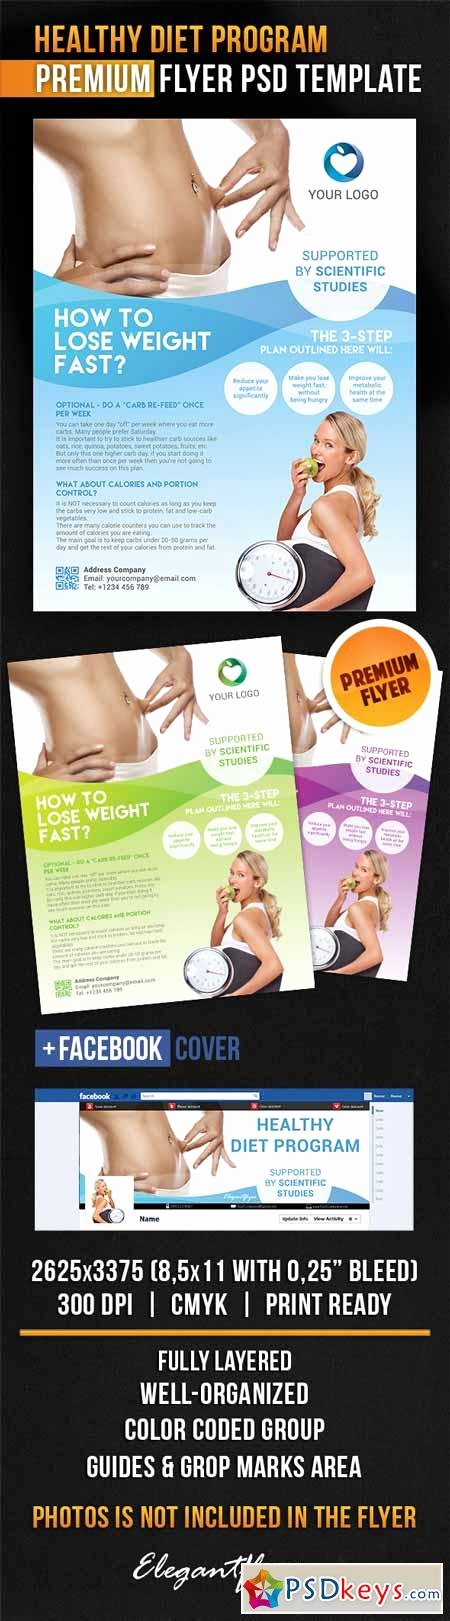 Facebook Ad Template Psd Unique Healthy Diet Program – Flyer Psd Template Cover